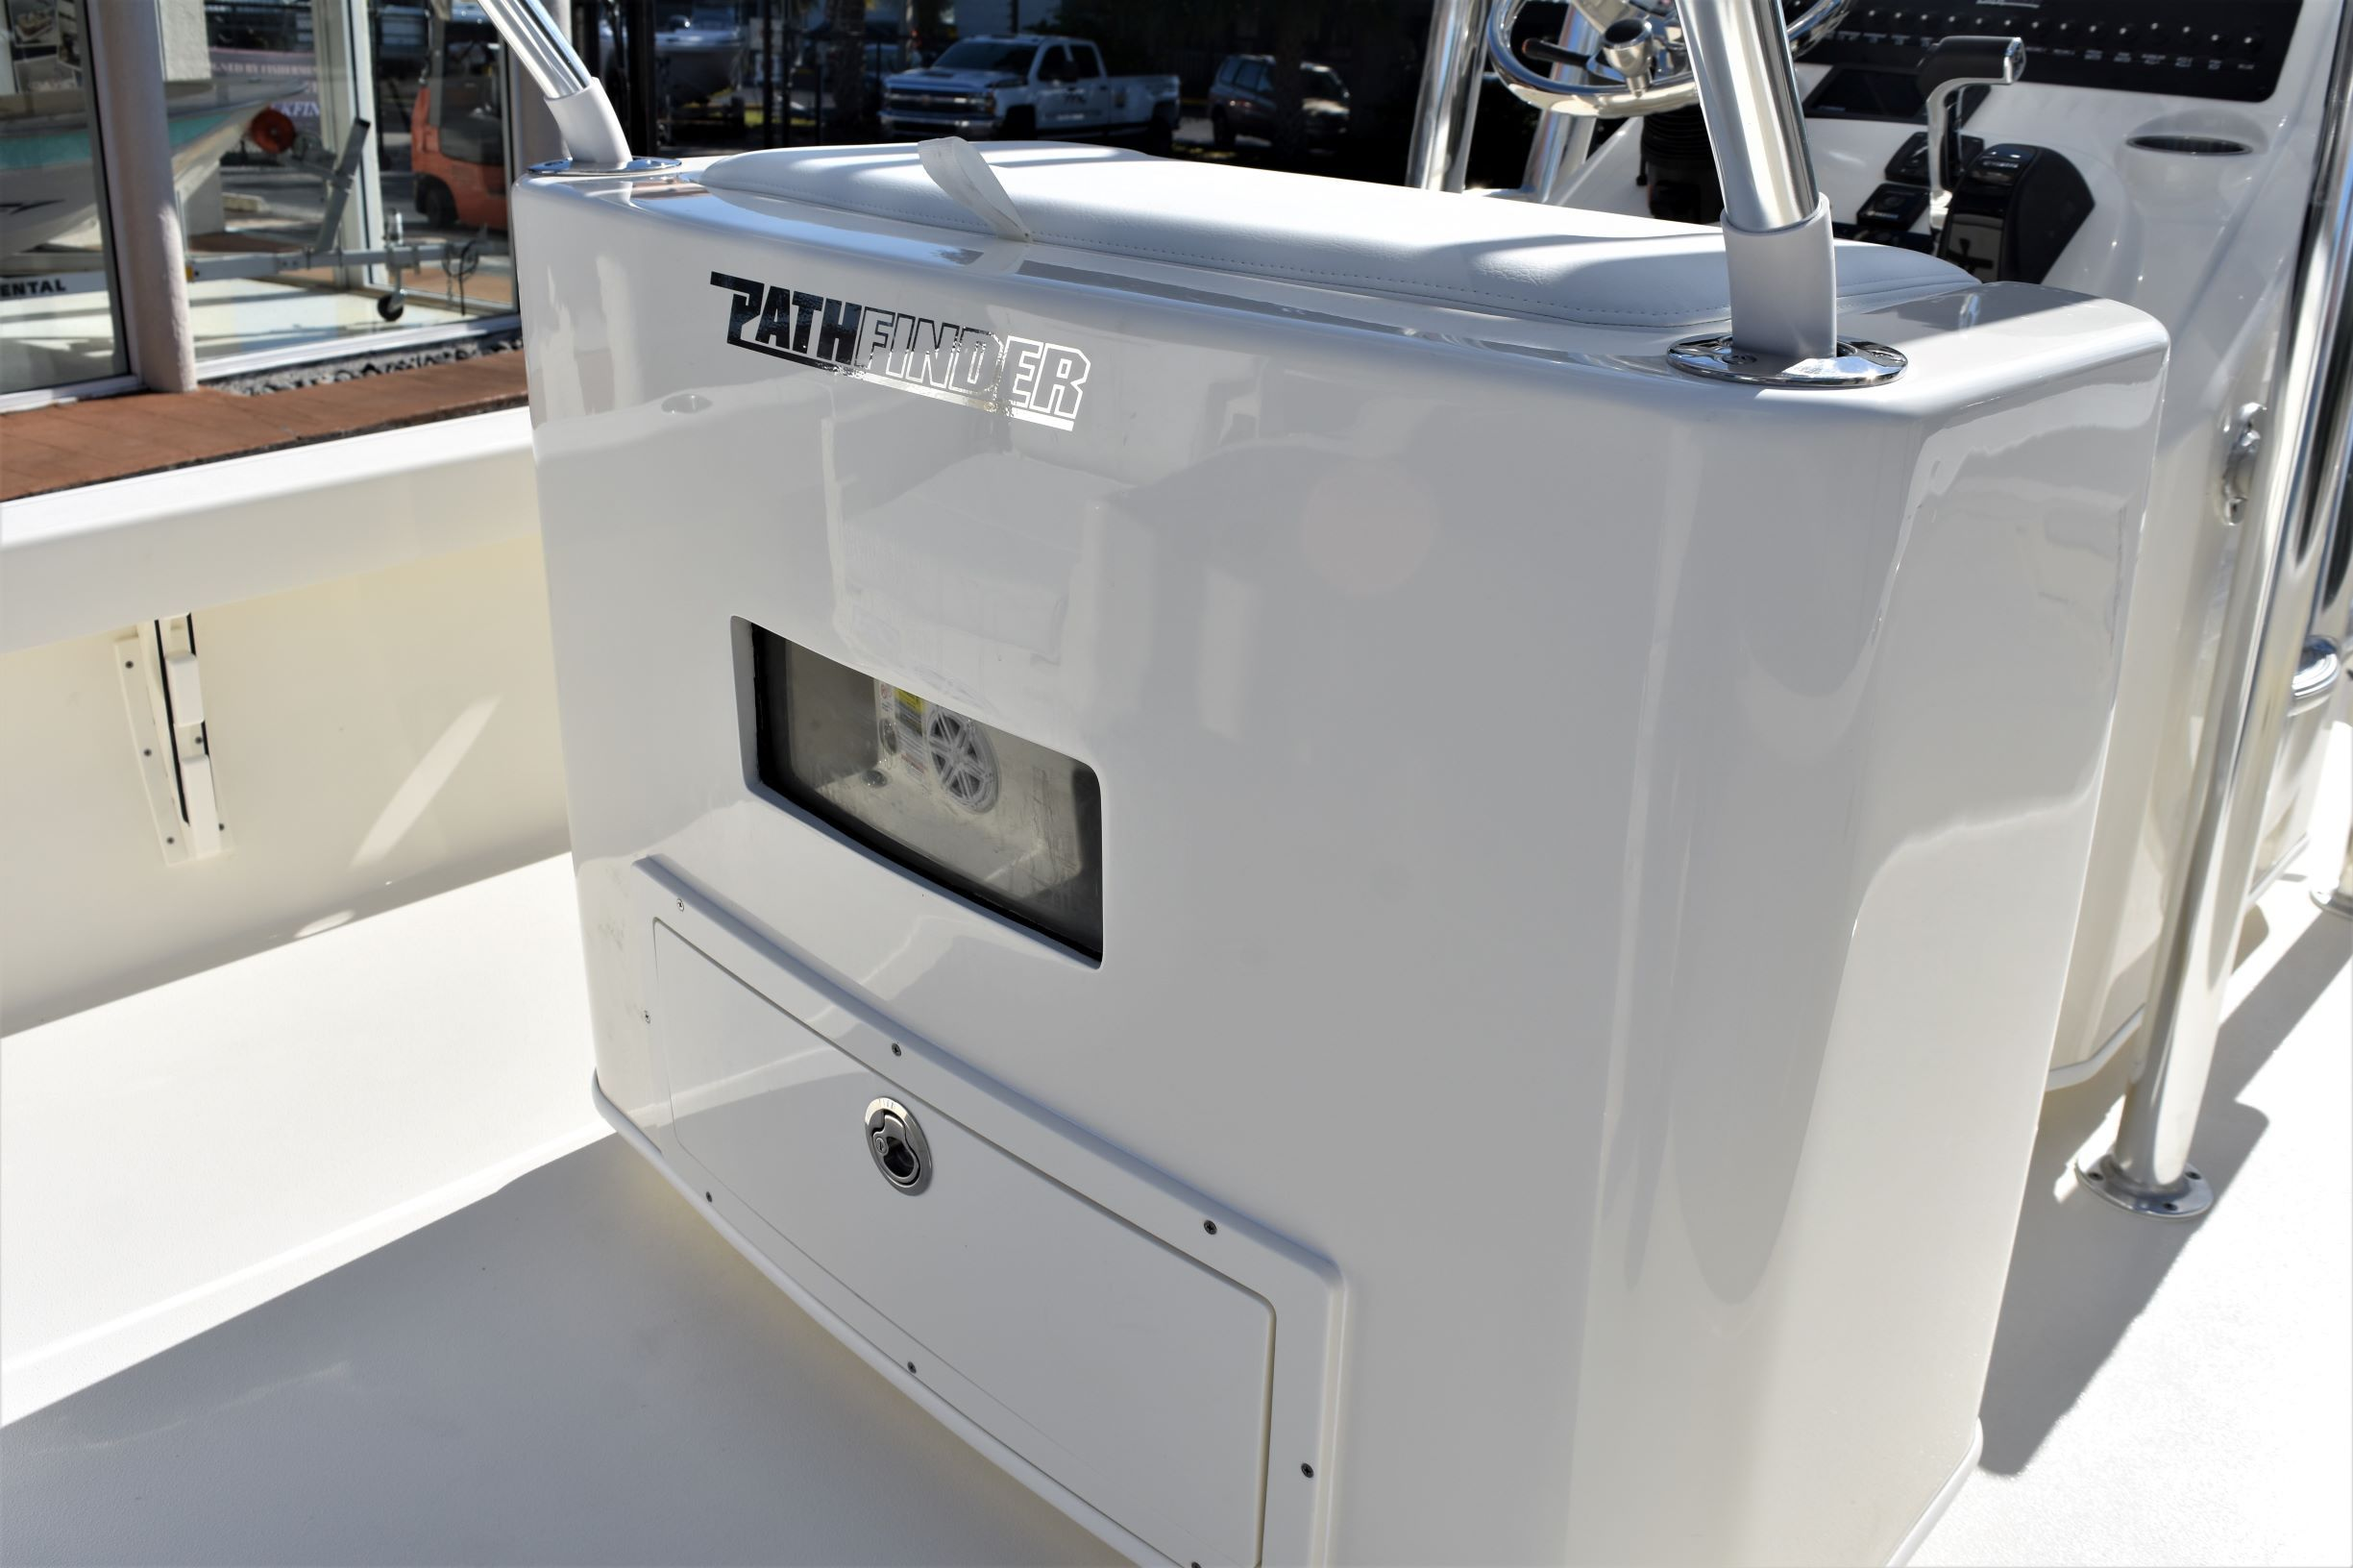 Thumbnail 30 for New 2020 Pathfinder 2500 Hybrid Bay Boat boat for sale in Vero Beach, FL